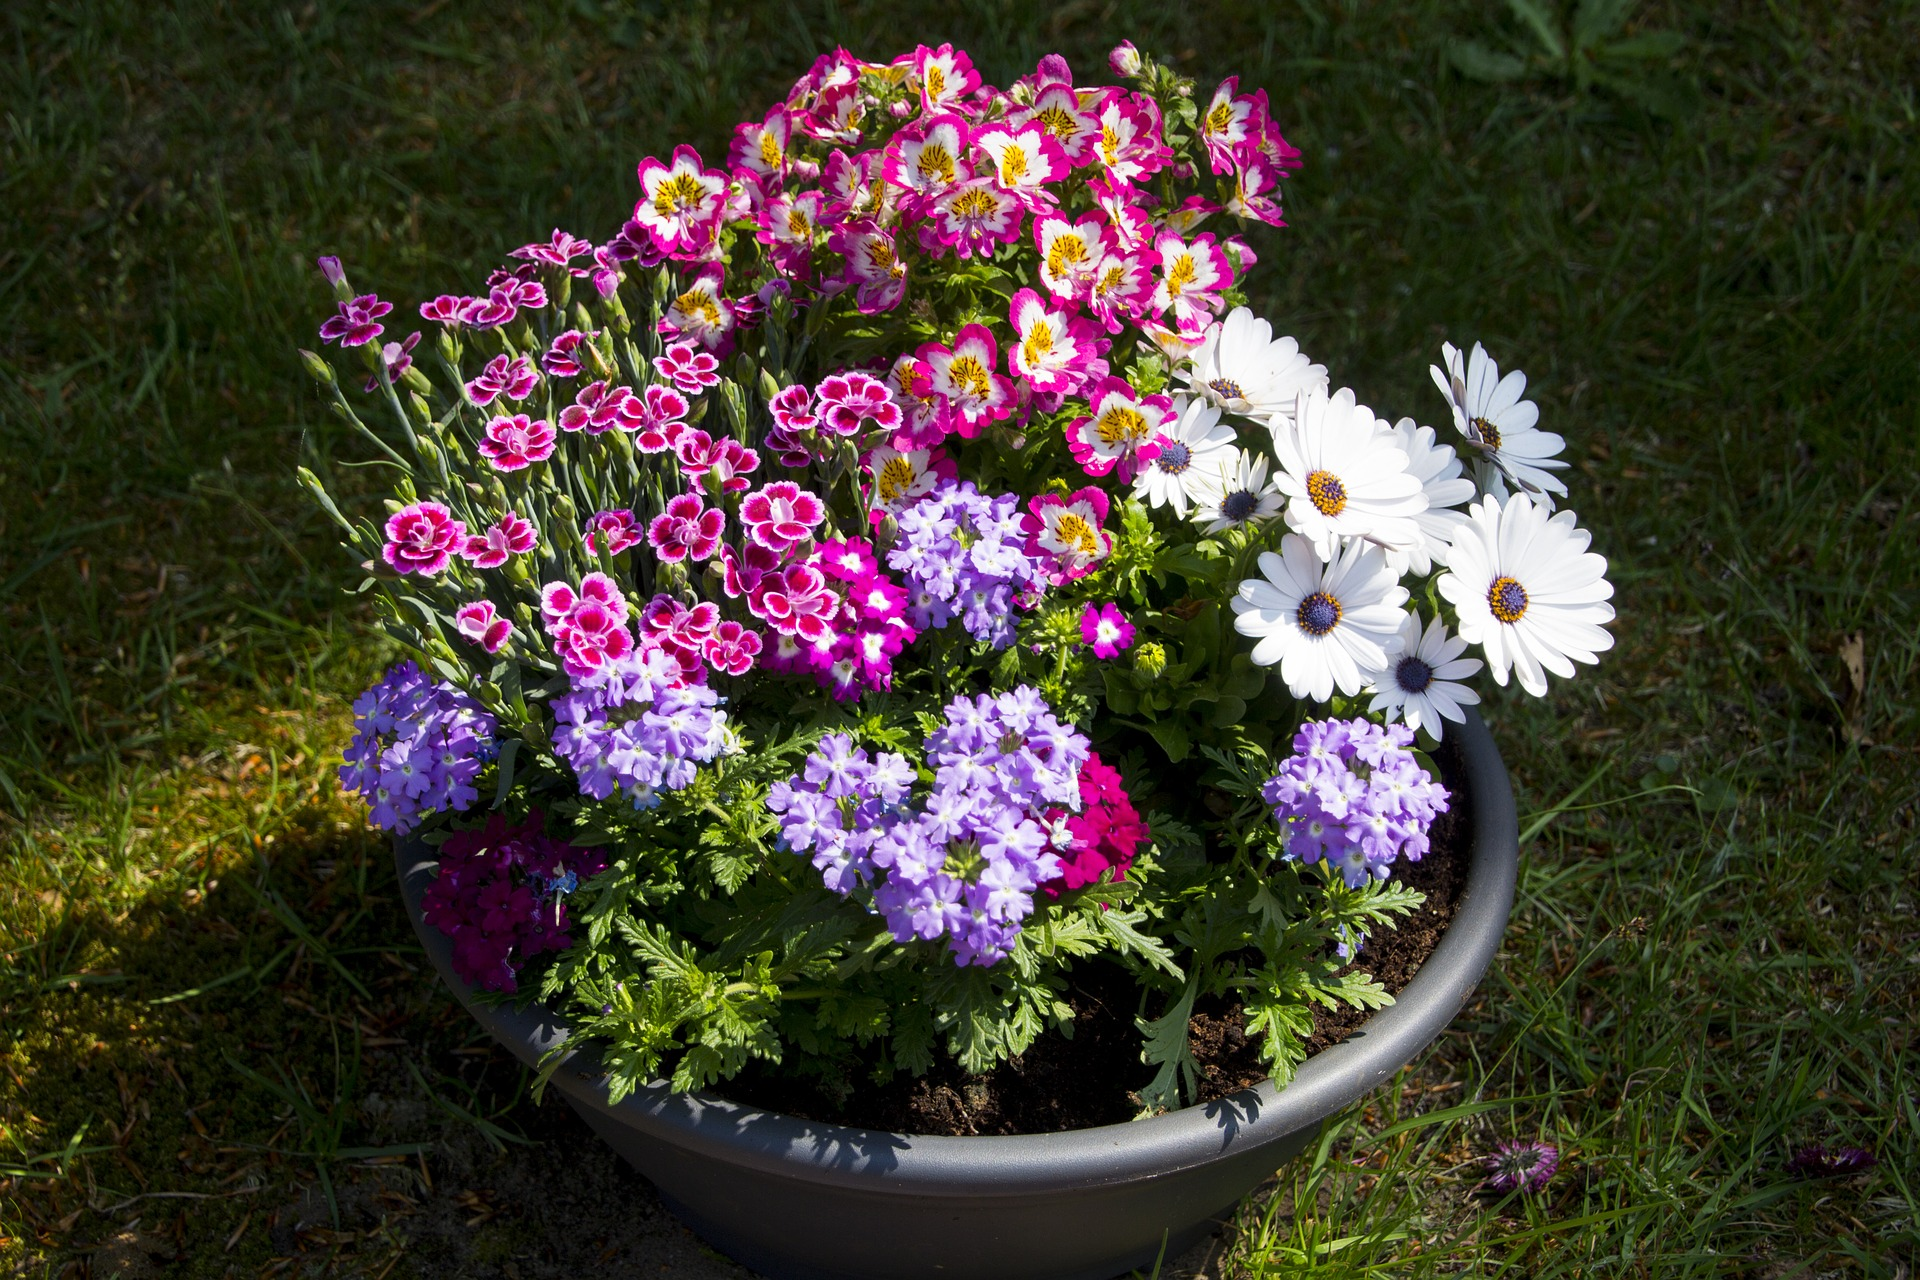 flower-pot-annuals-perennials-reston-farm-market-va.jpg